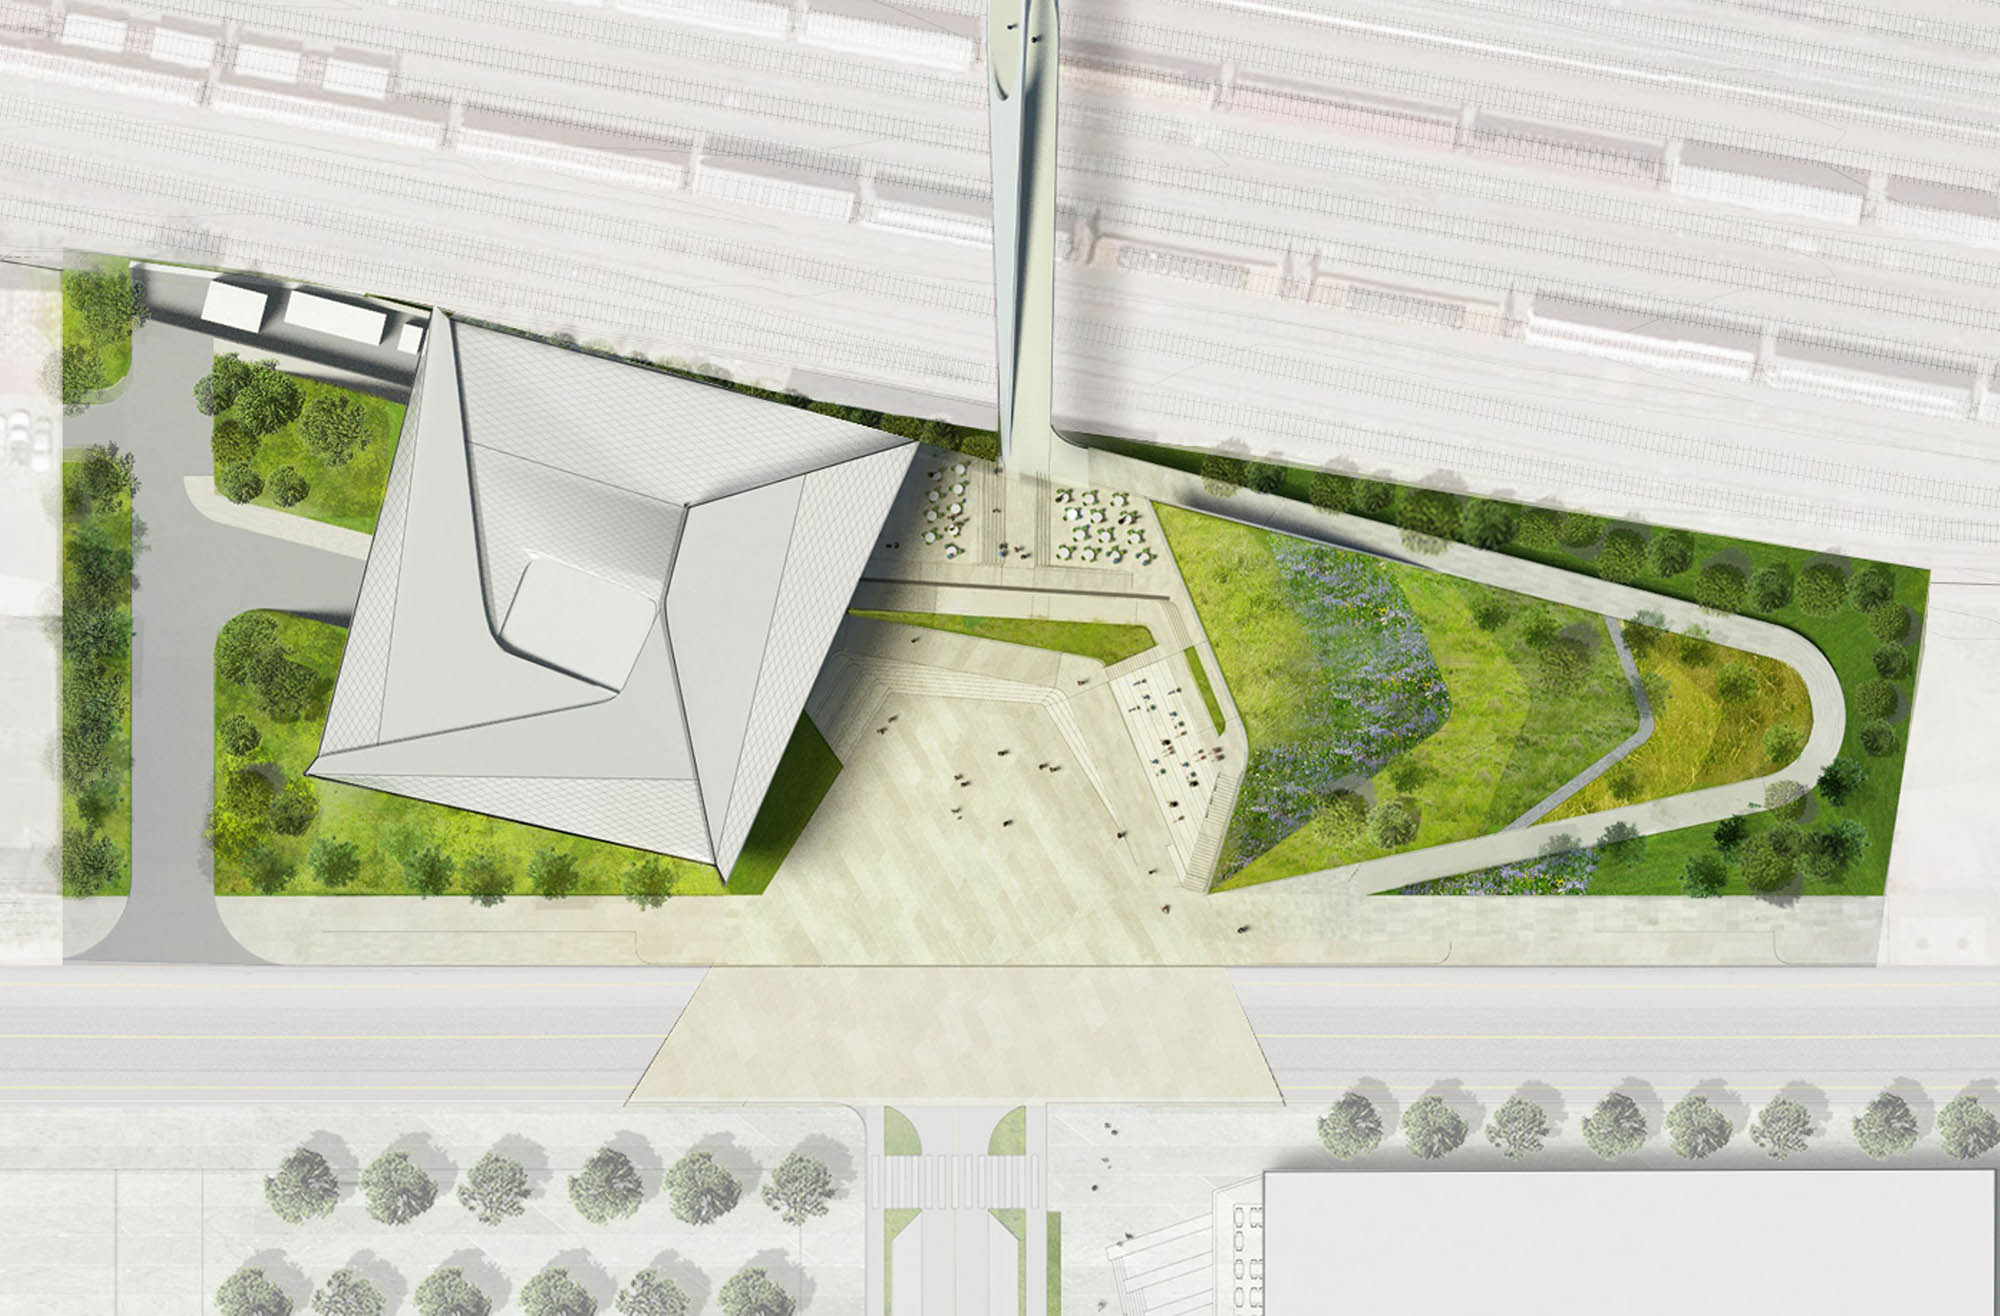 mm_United States Olympic Museum design by Diller Scofidio + Renfro _02